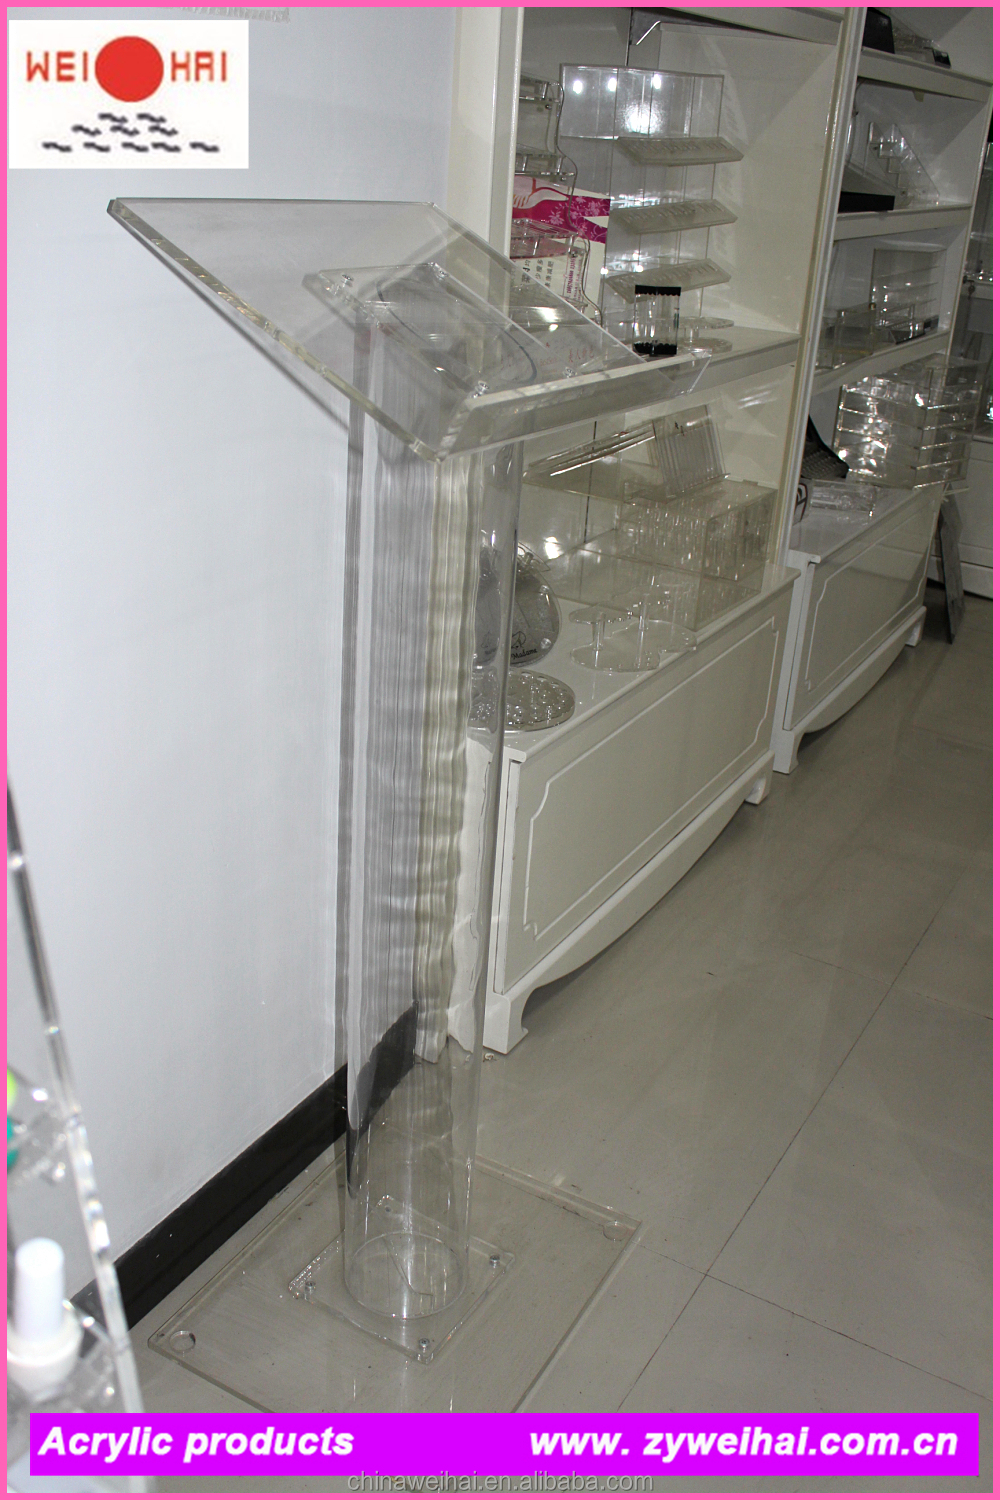 Modern Acrylic Church Pulpit Design With Stainless Base,Church ...